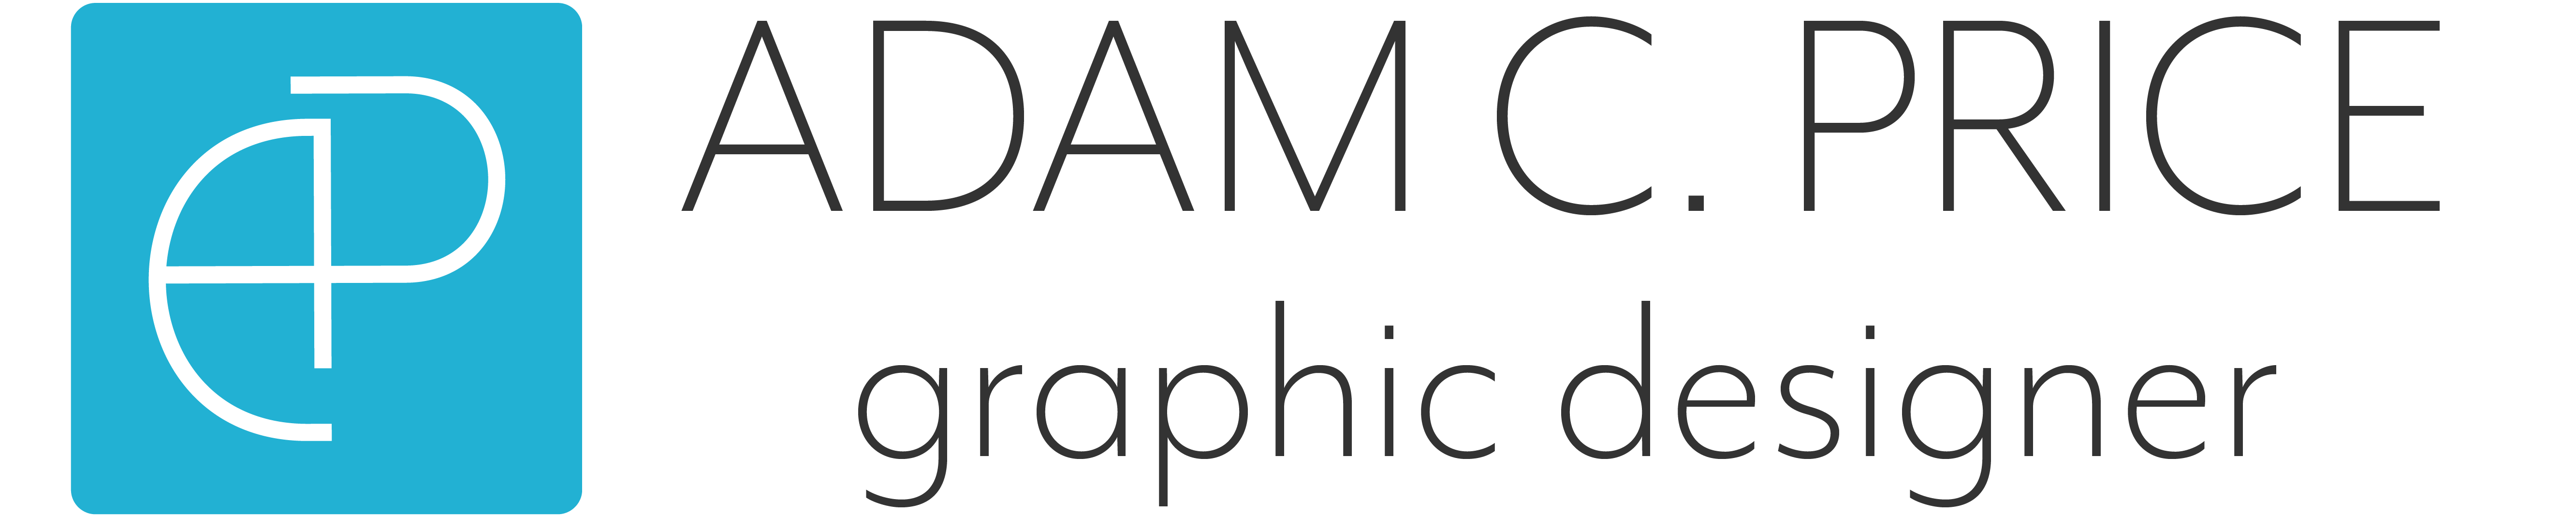 Adam C. Price / Graphic Designer